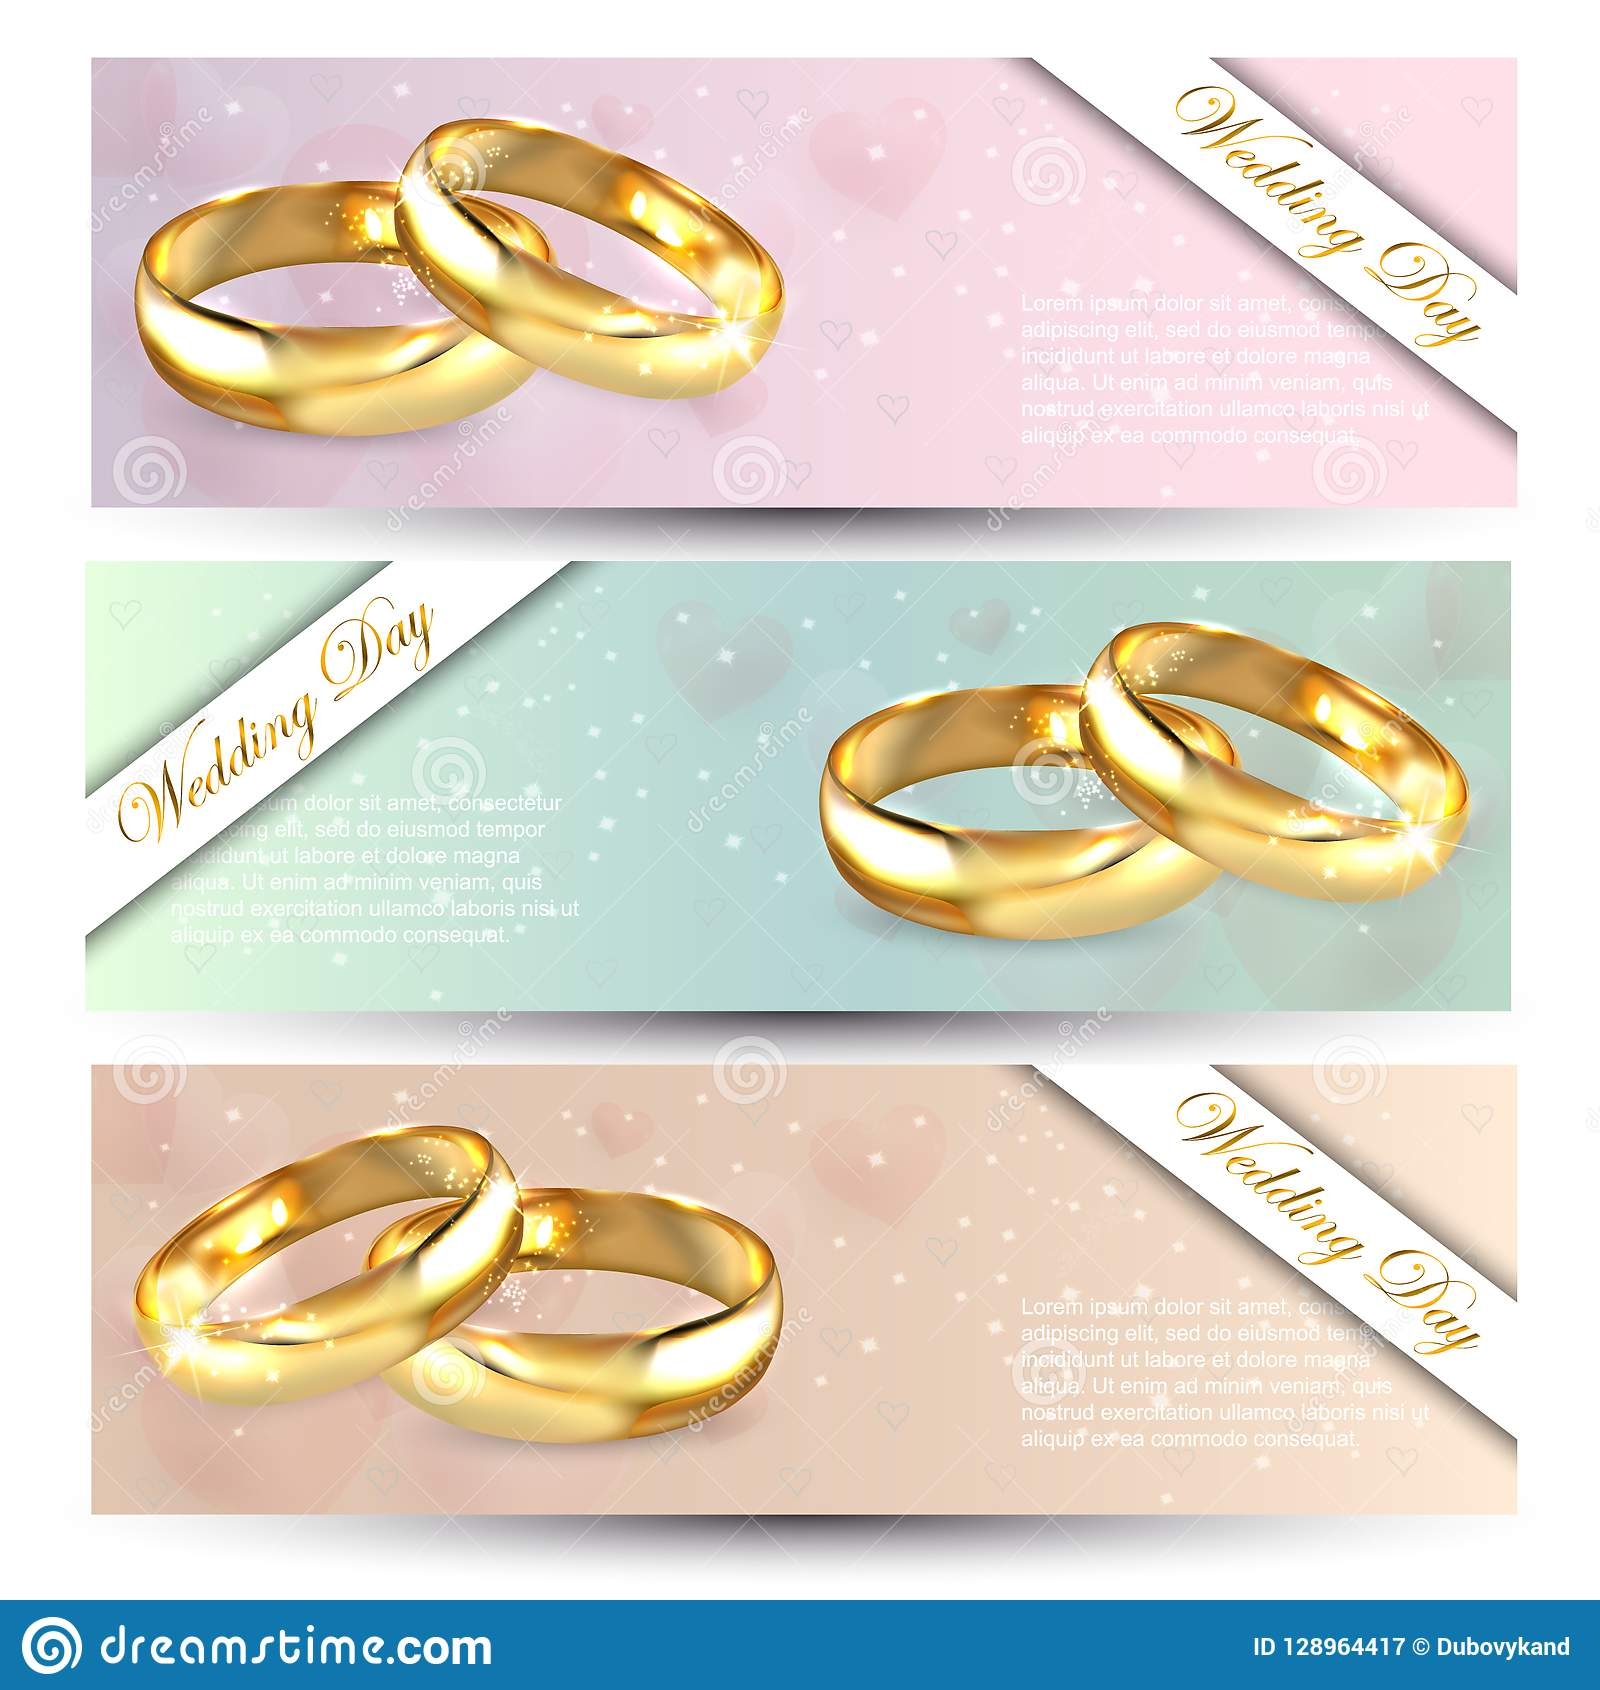 Together Forever Two Shiny Wedding Rings In Retro Style Stock